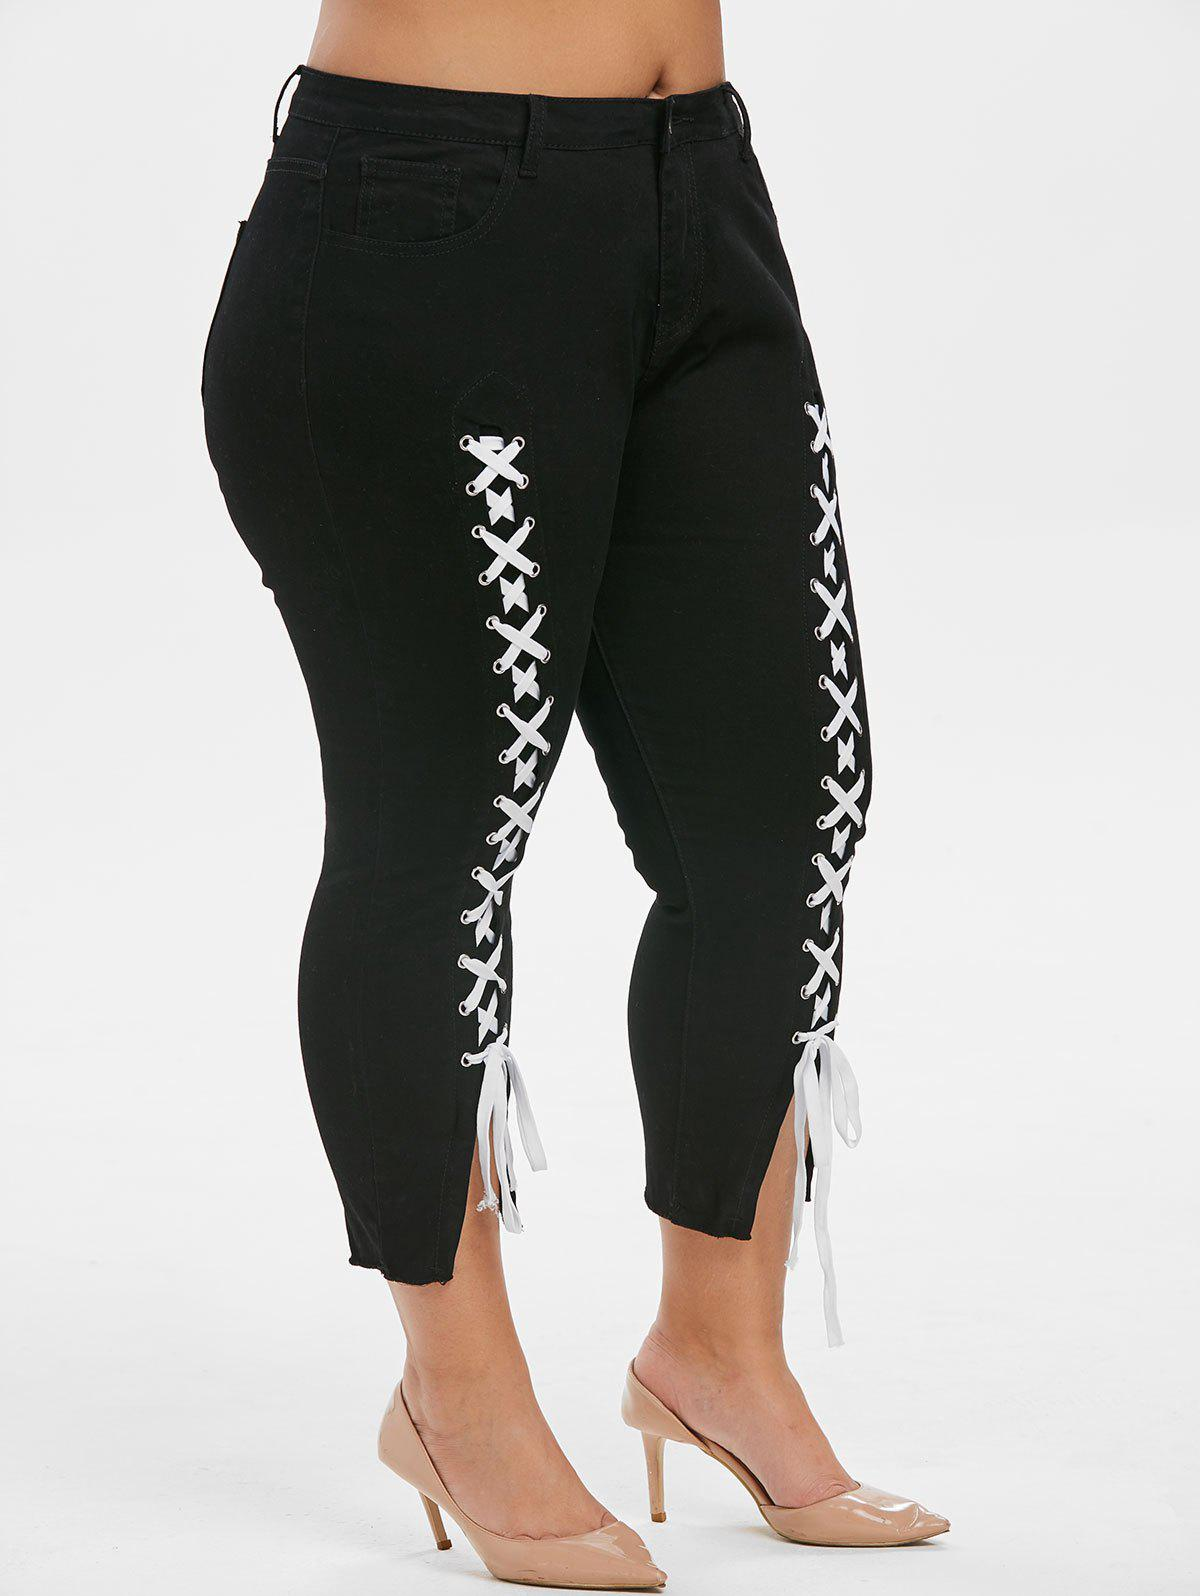 Plus Size Lace Up Frayed Cropped Jeans - BLACK L